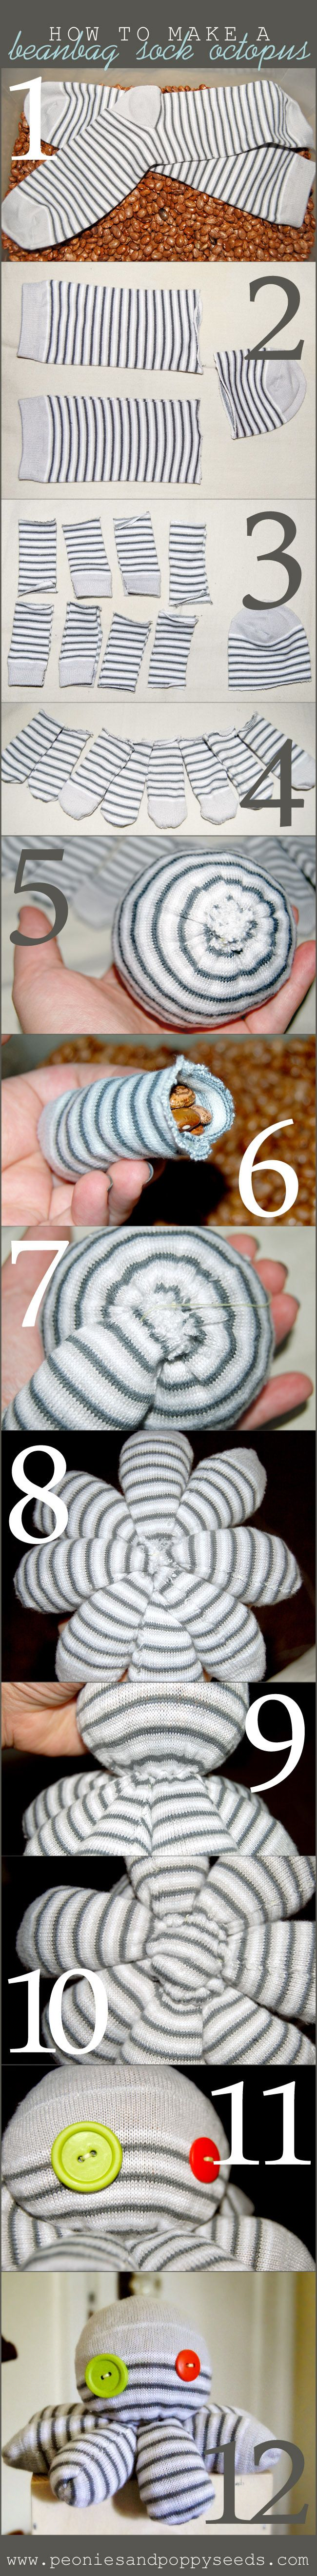 How to make a beanbag sock octopus